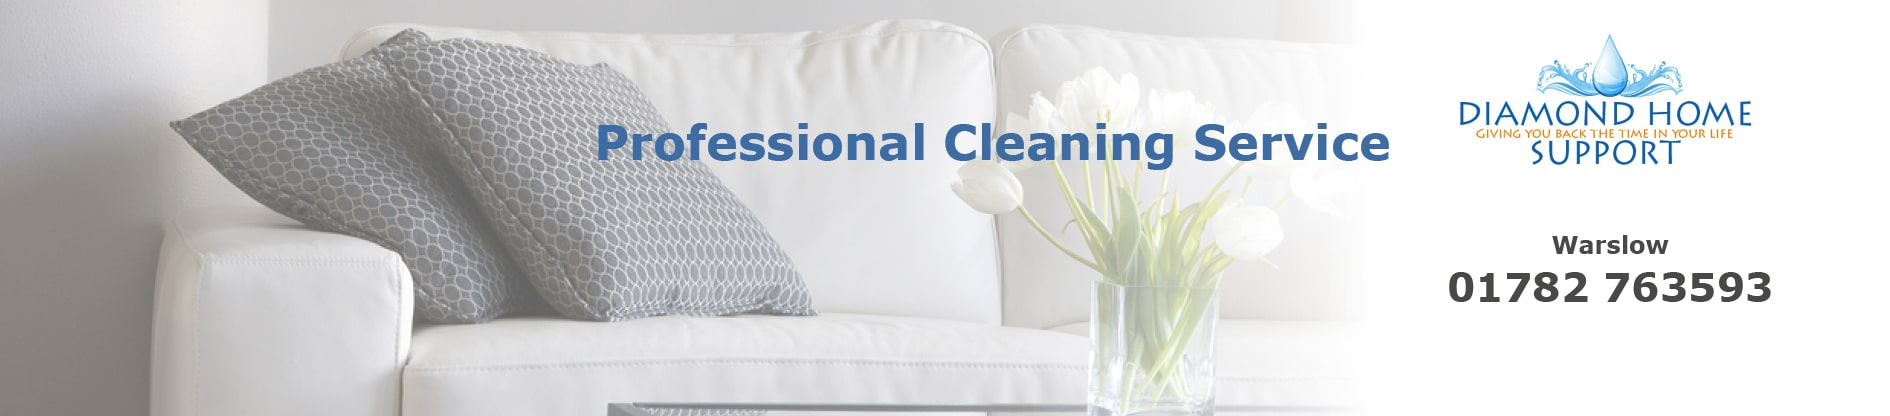 Cleaners in Warslow